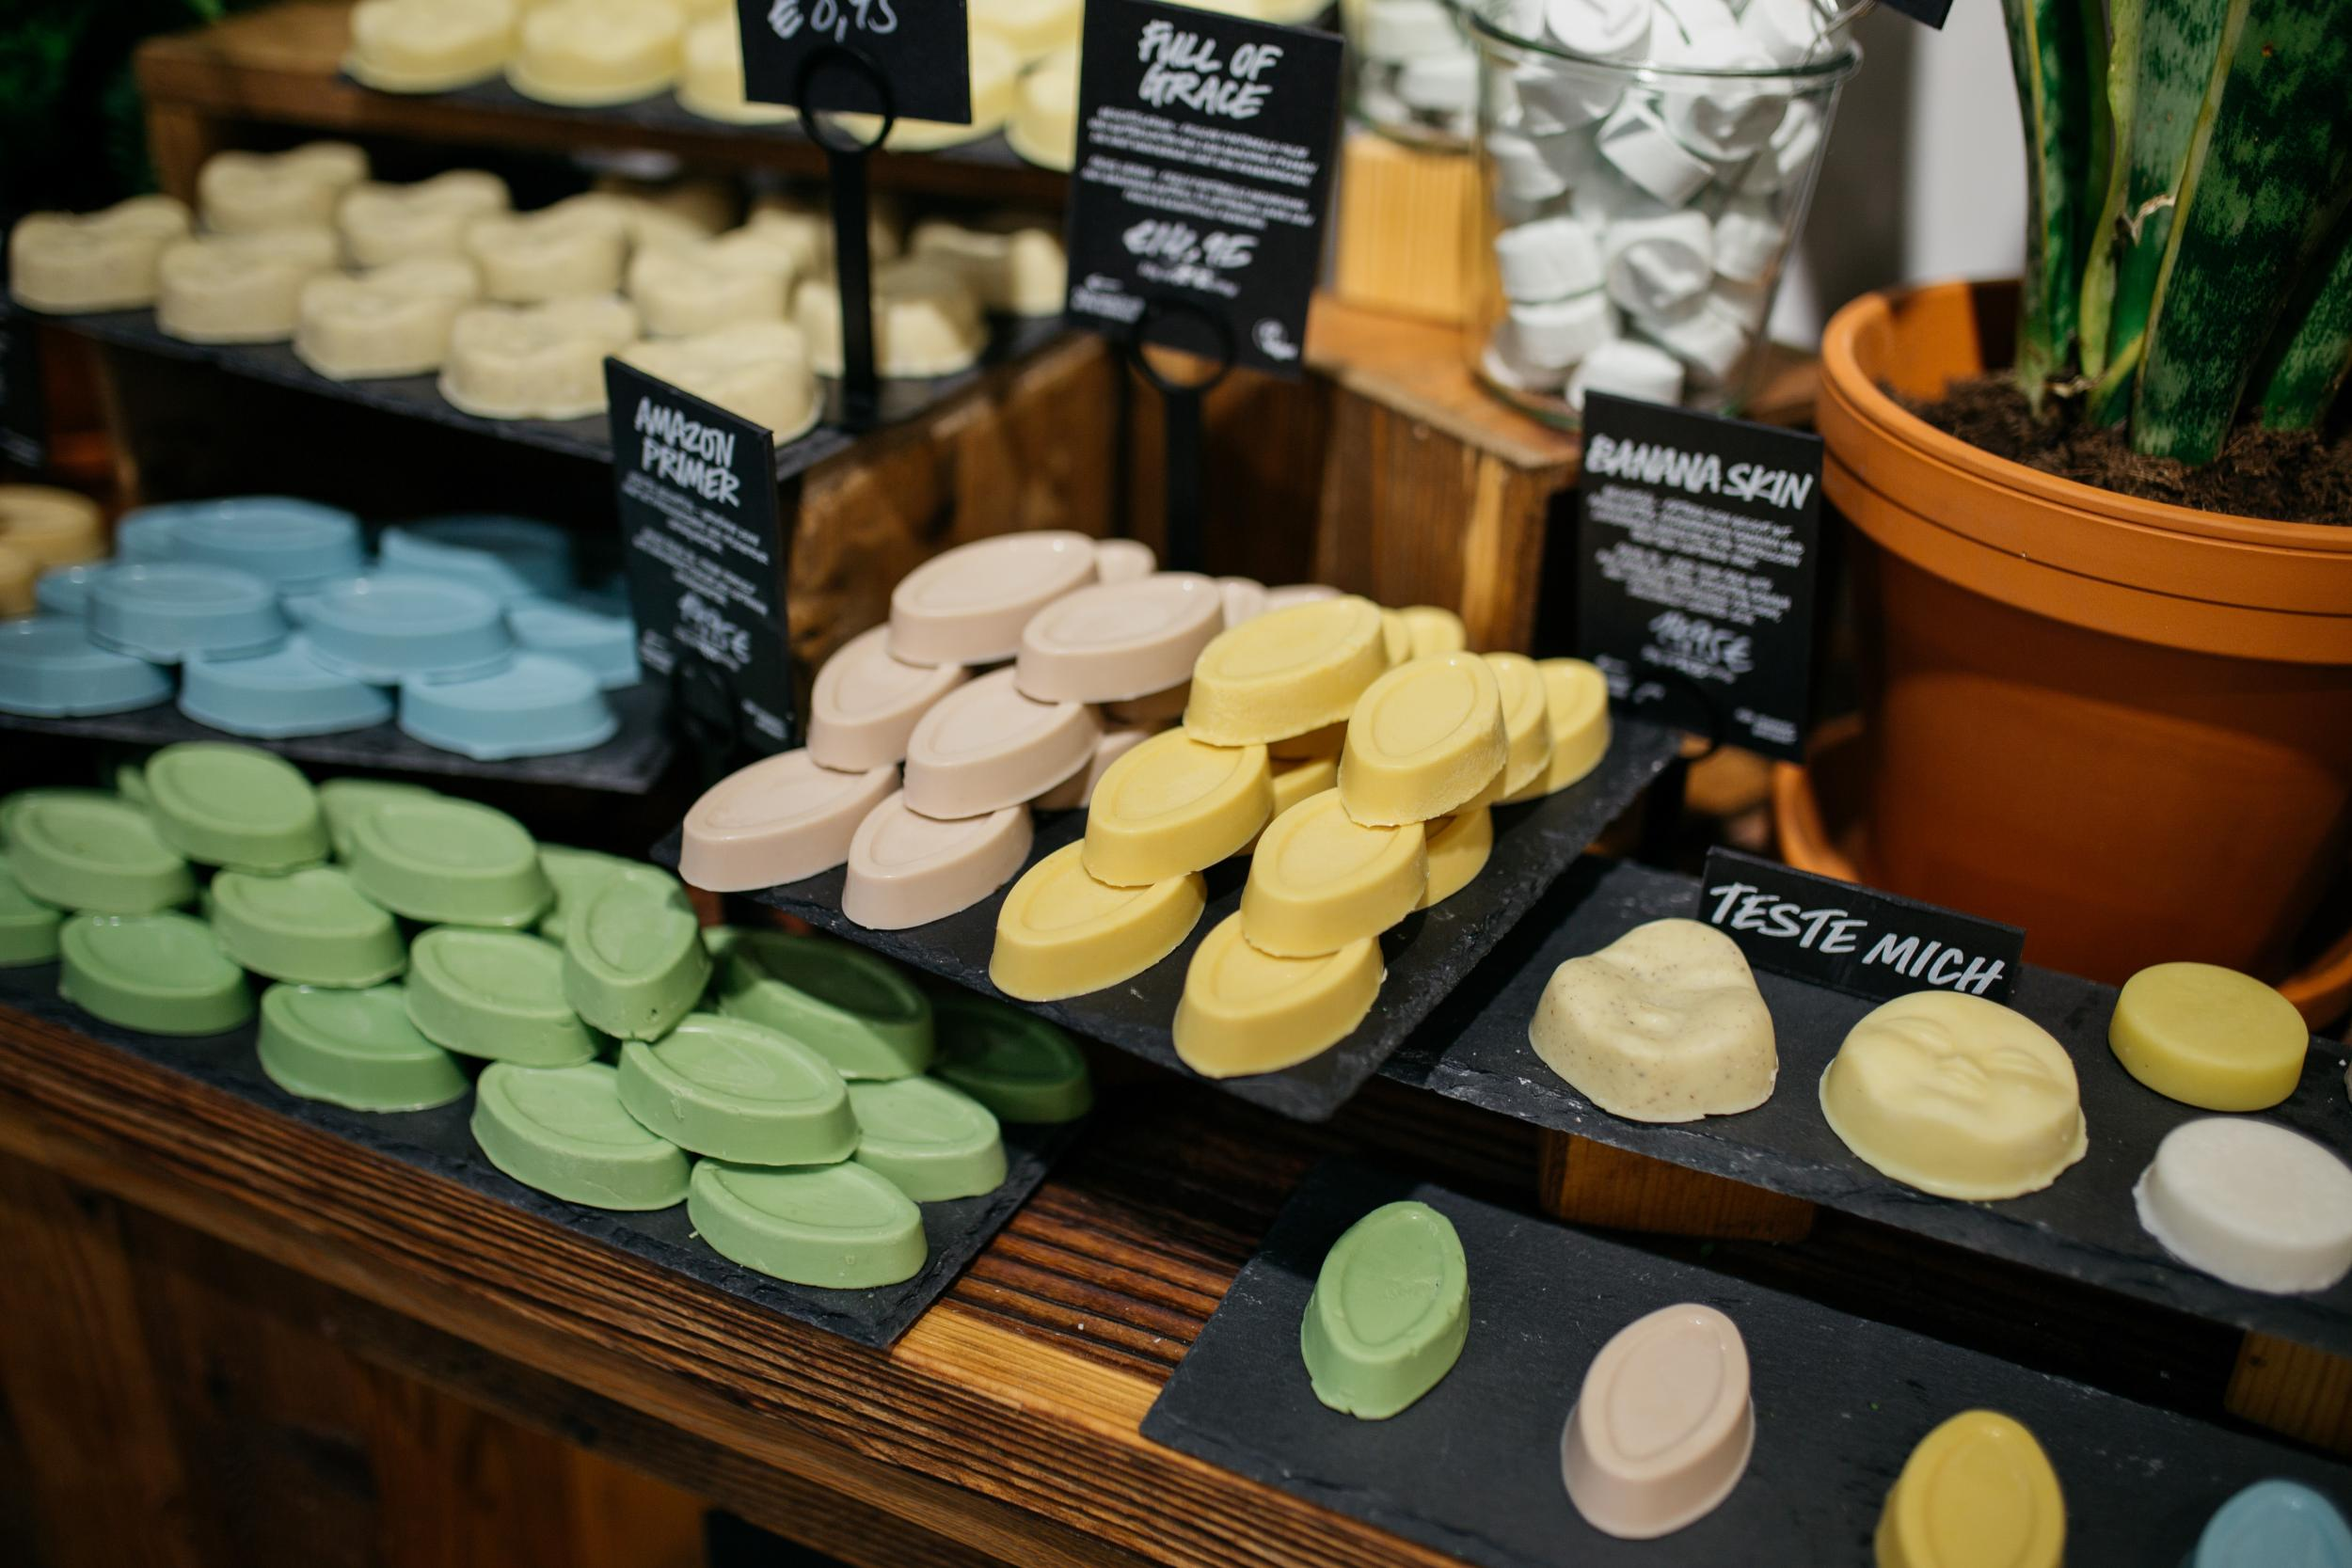 Lush to open first plastic-free store in UK